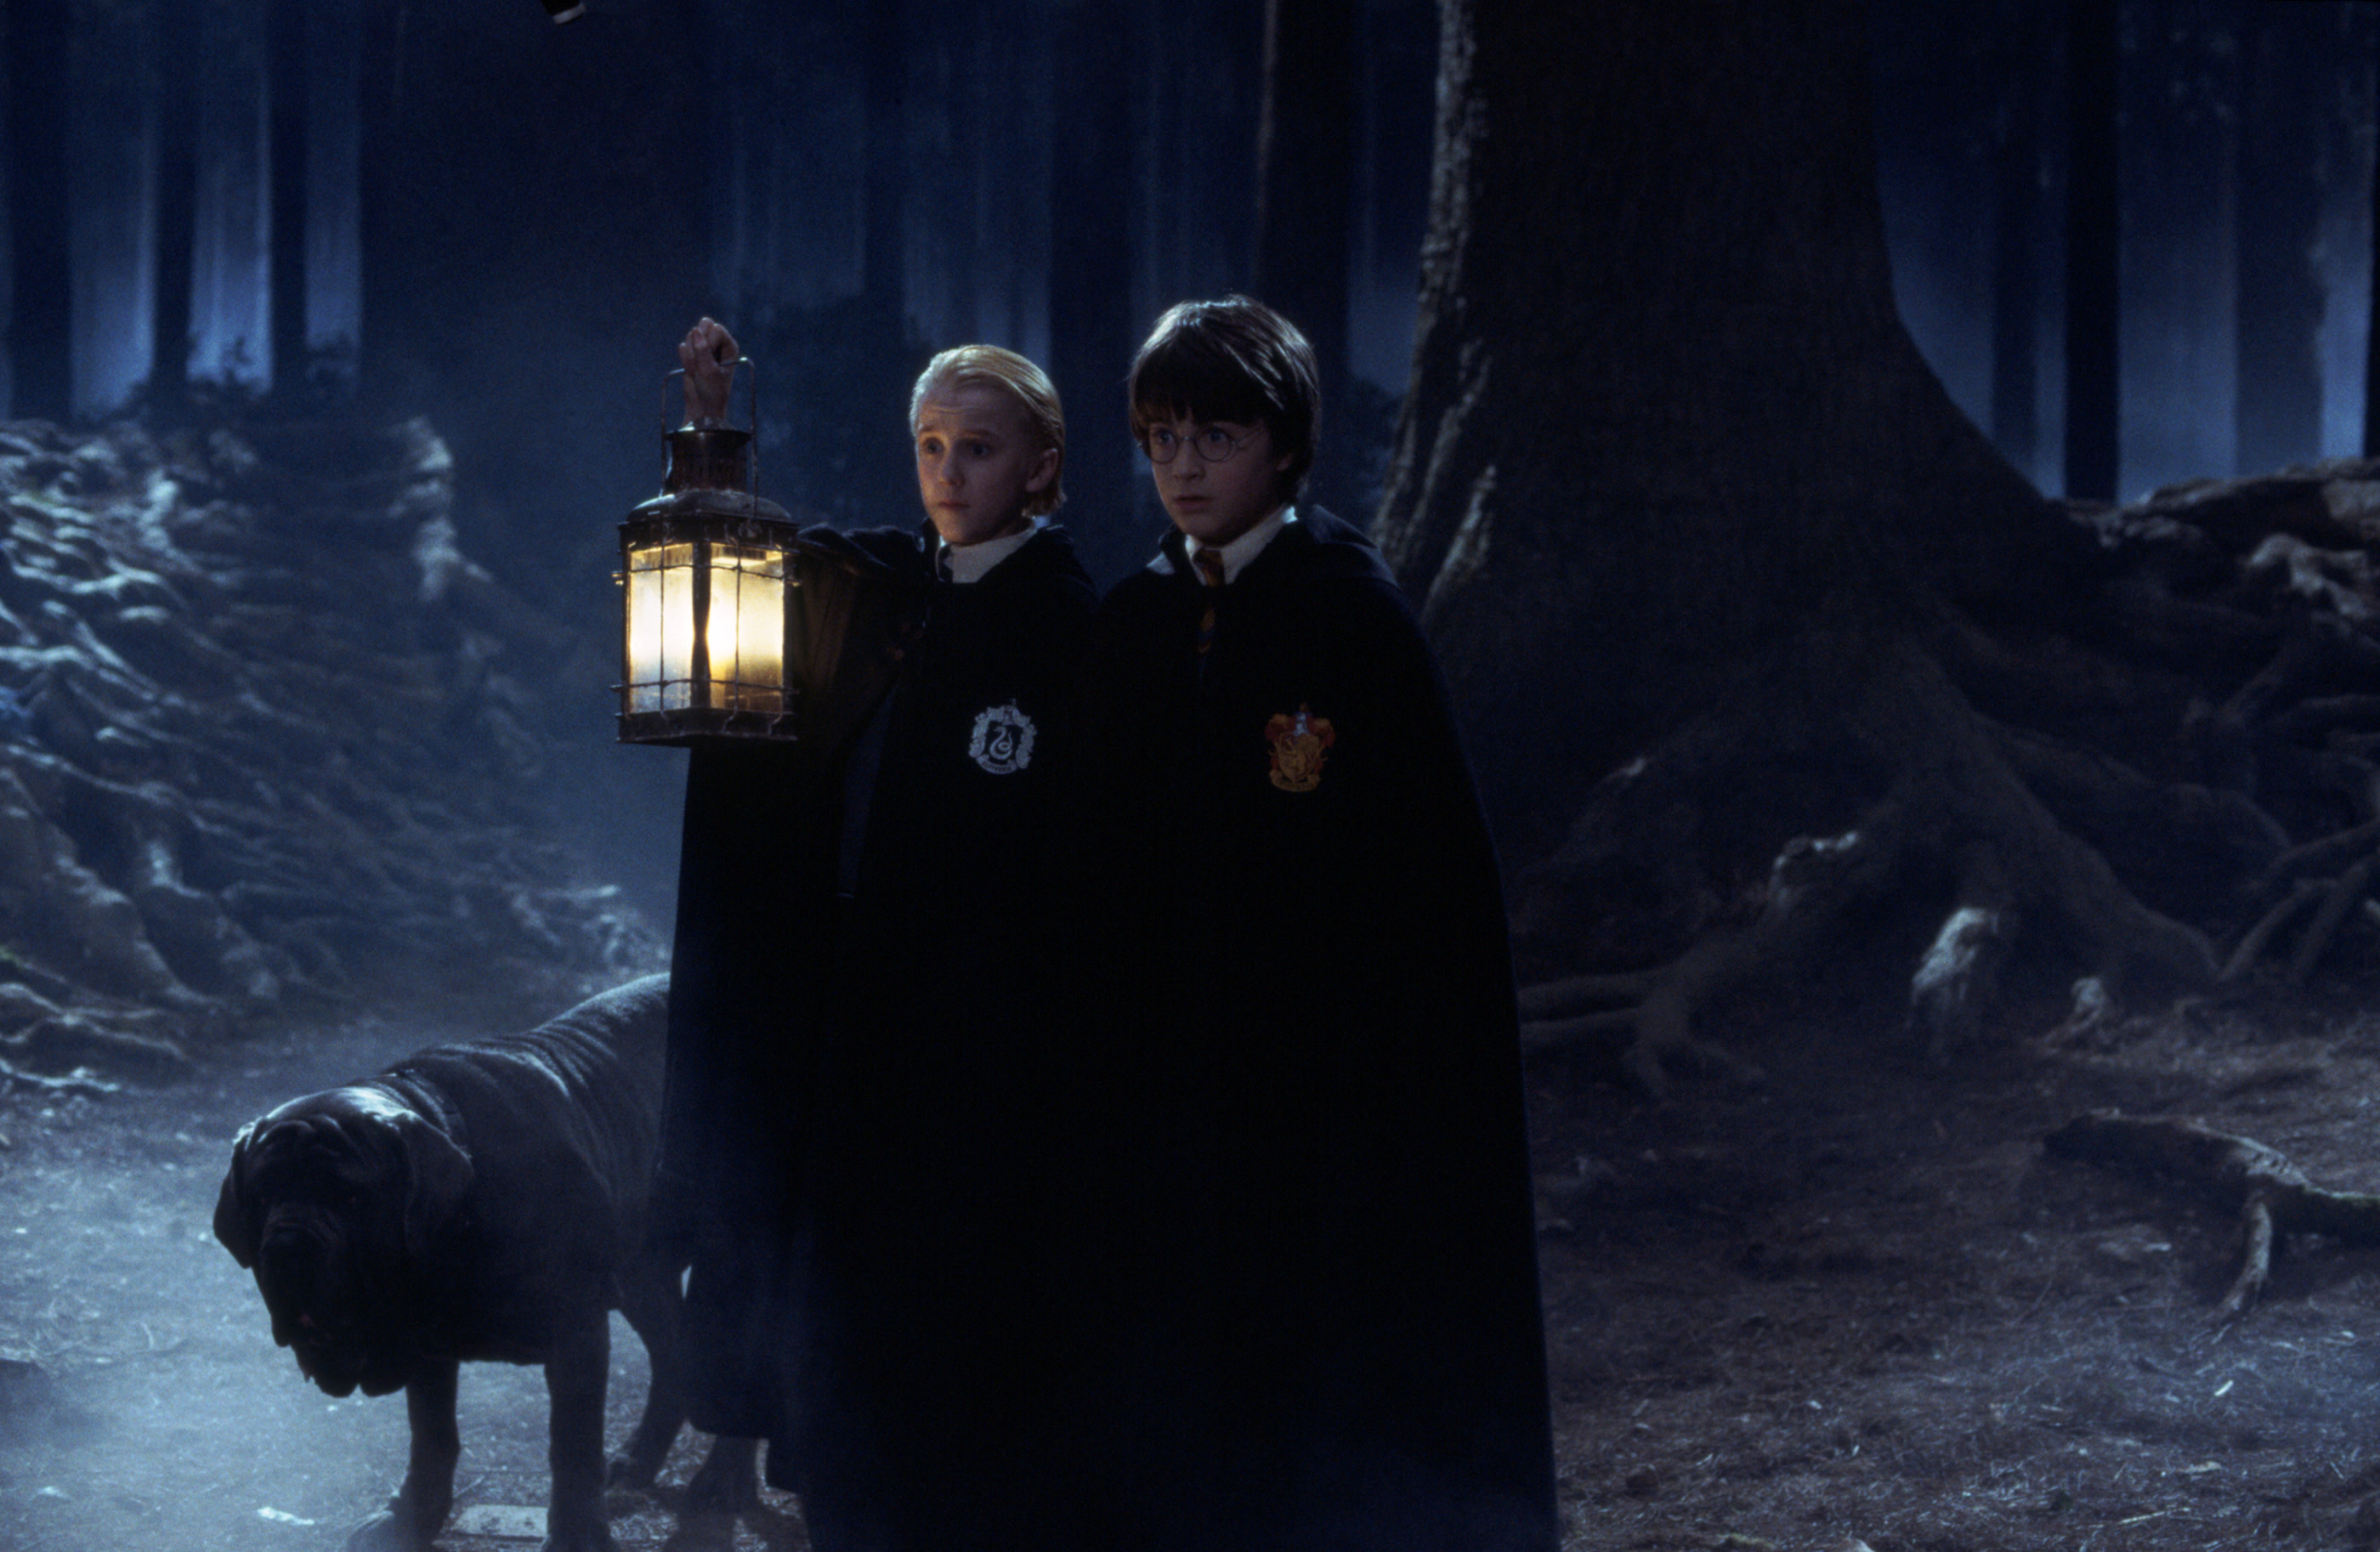 WB-HP-F1-WEB-HERO-harry-draco-forbidden-forest-fang